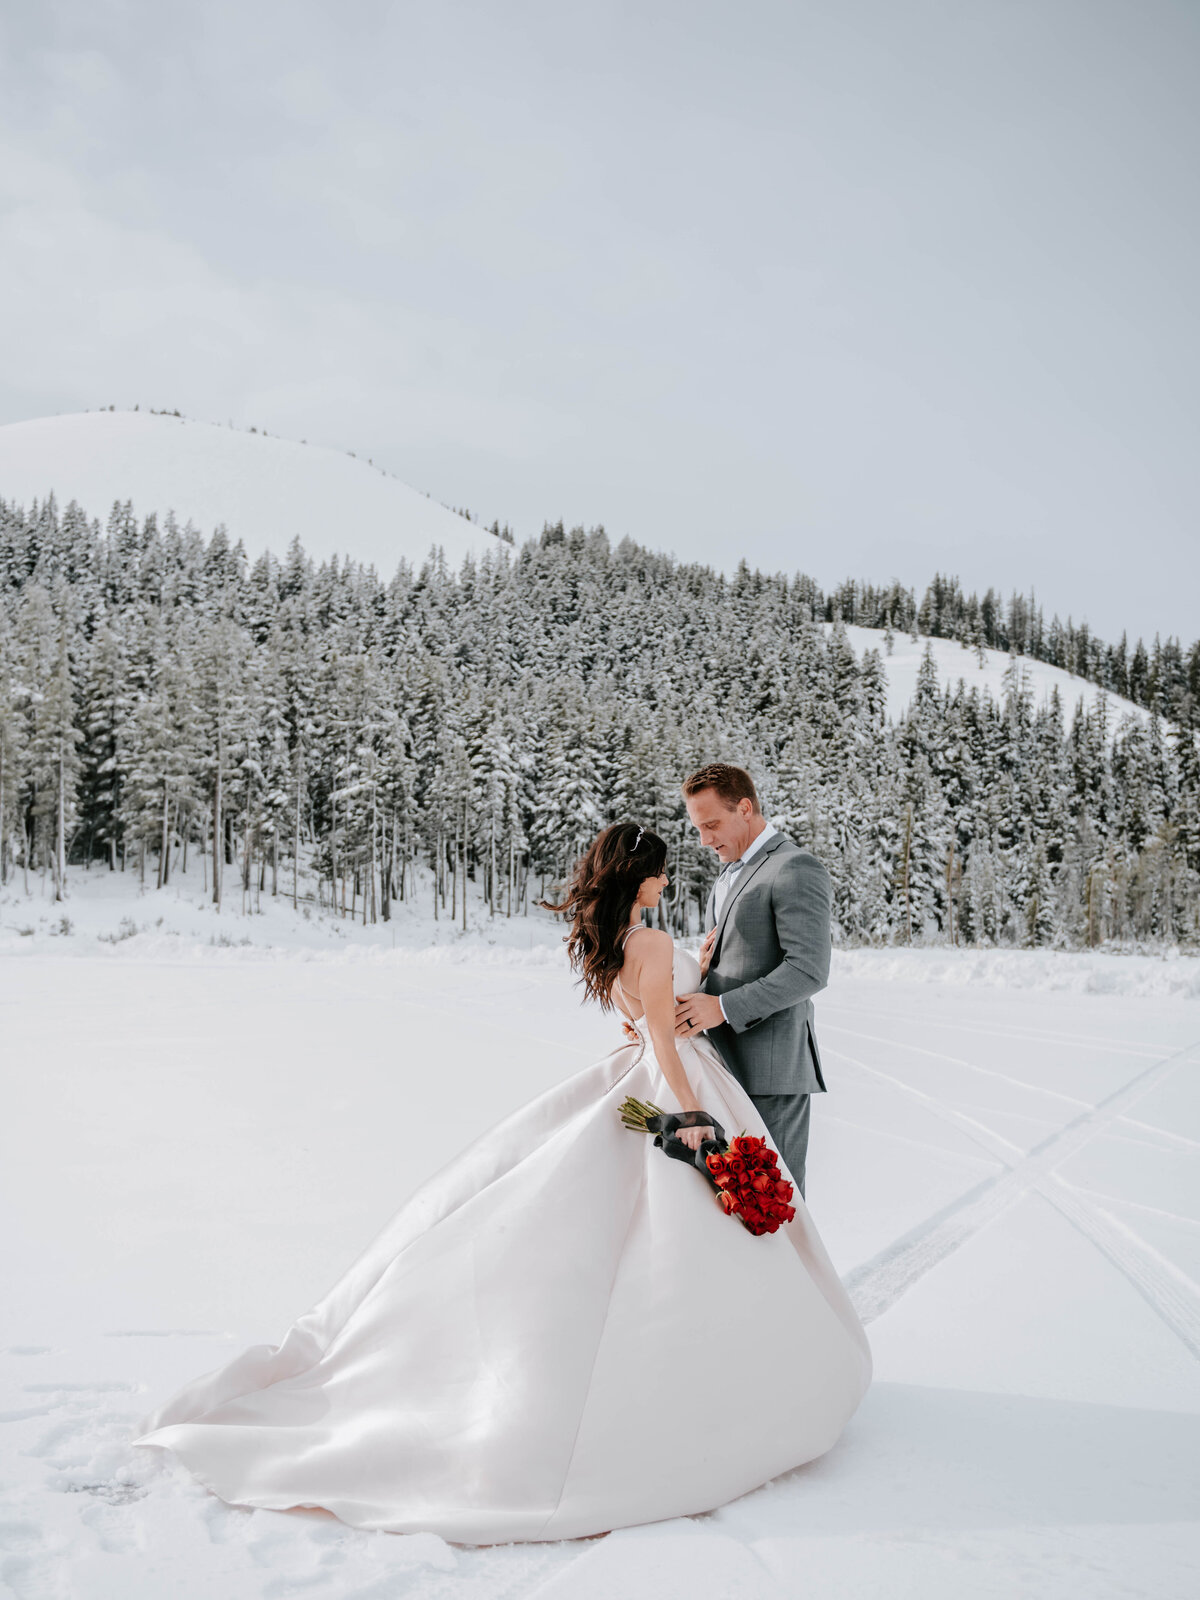 mt-bachelor-snow-winter-elopement-bend-oregon-wedding-photographer-2127